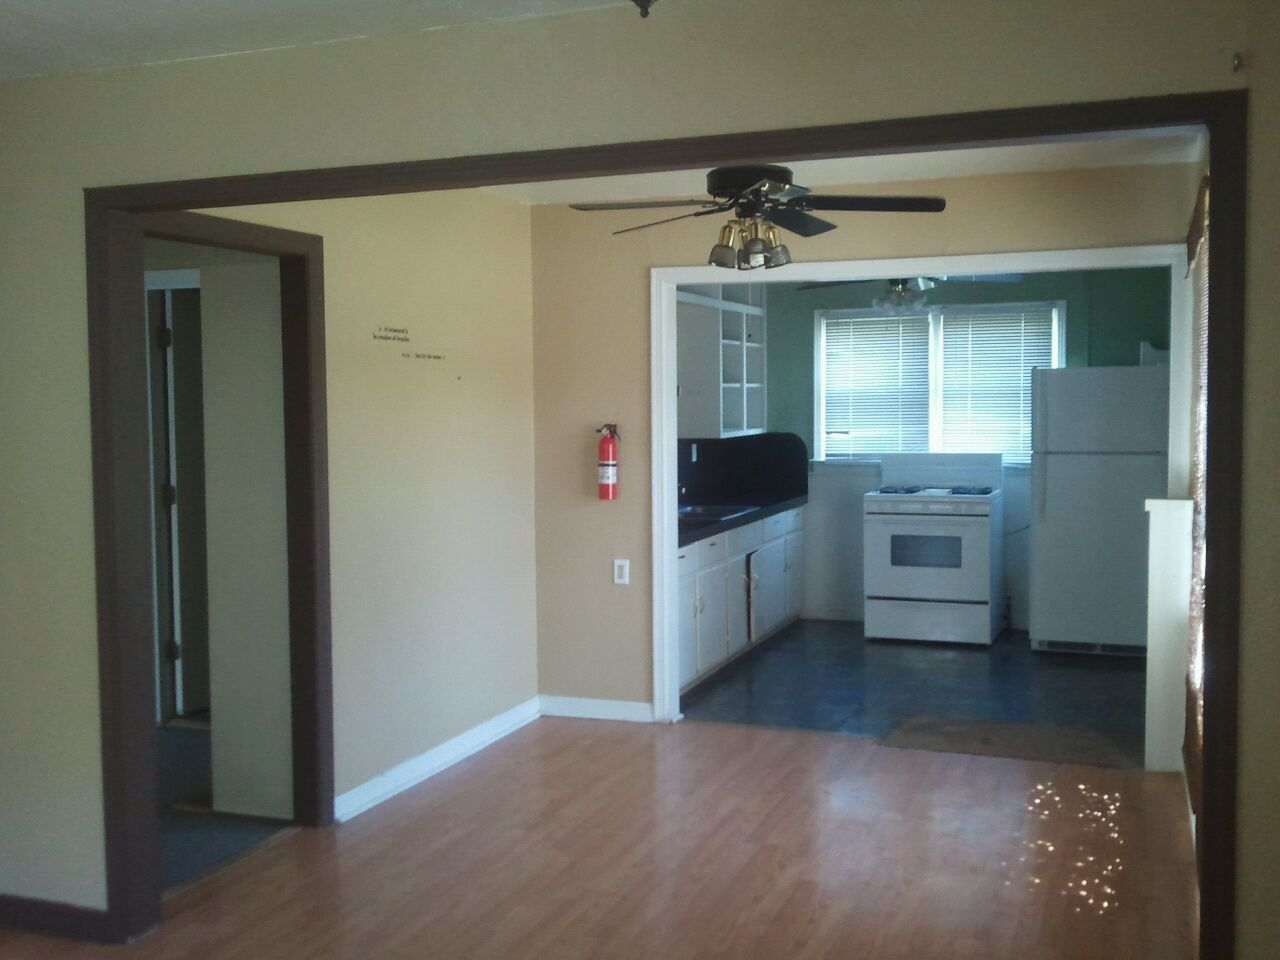 2 Bedrooms For Rent Bedroom 2 Bedroom Apartments For Rent Home ...